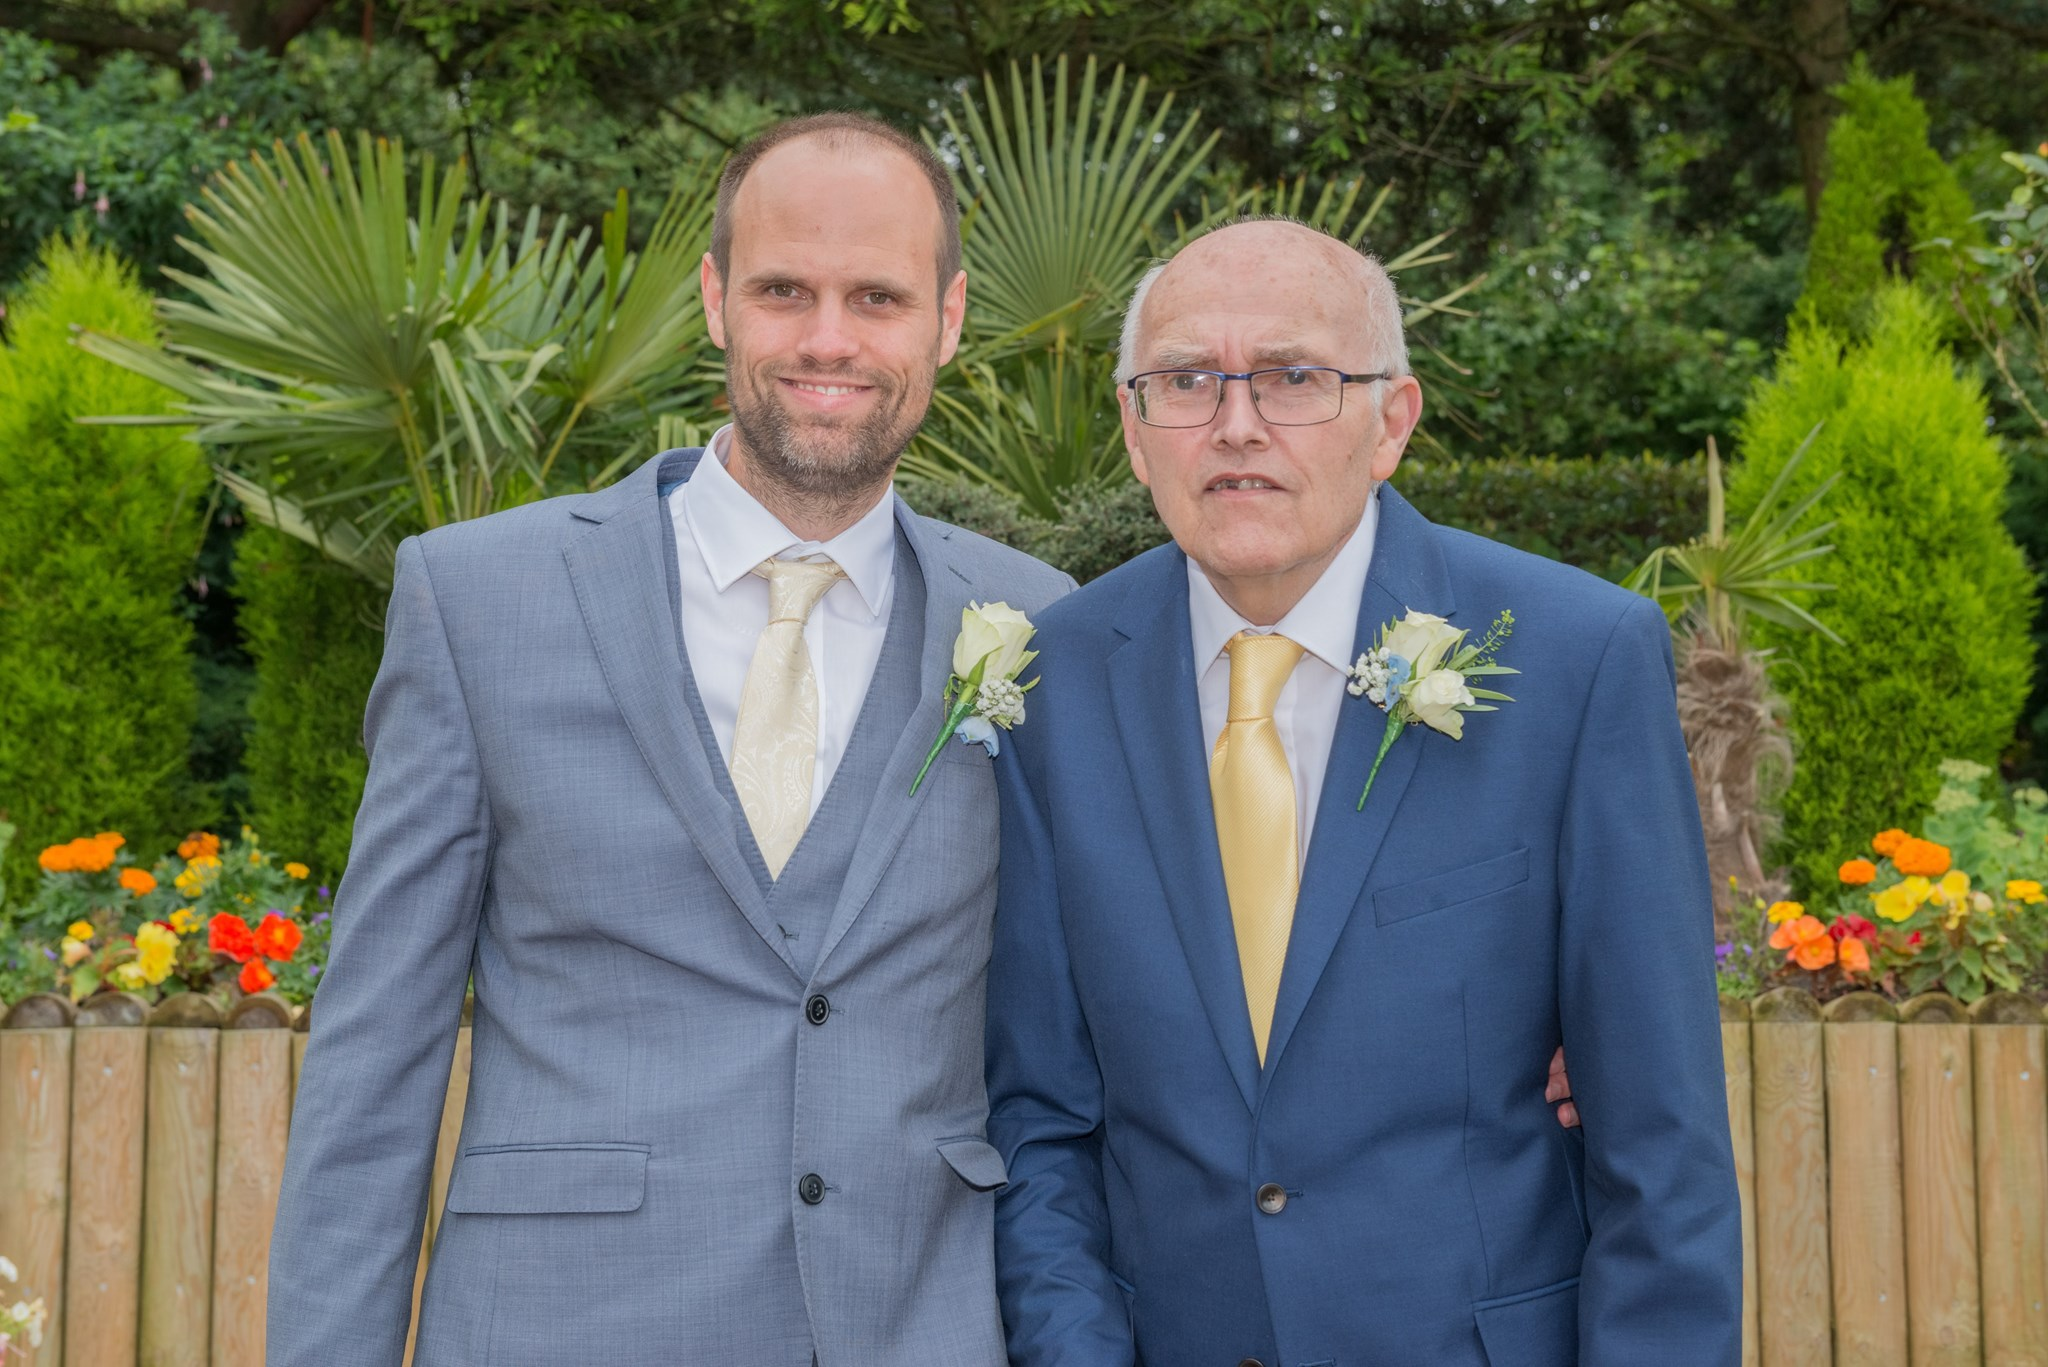 Me and Dad - My Wedding July 2017